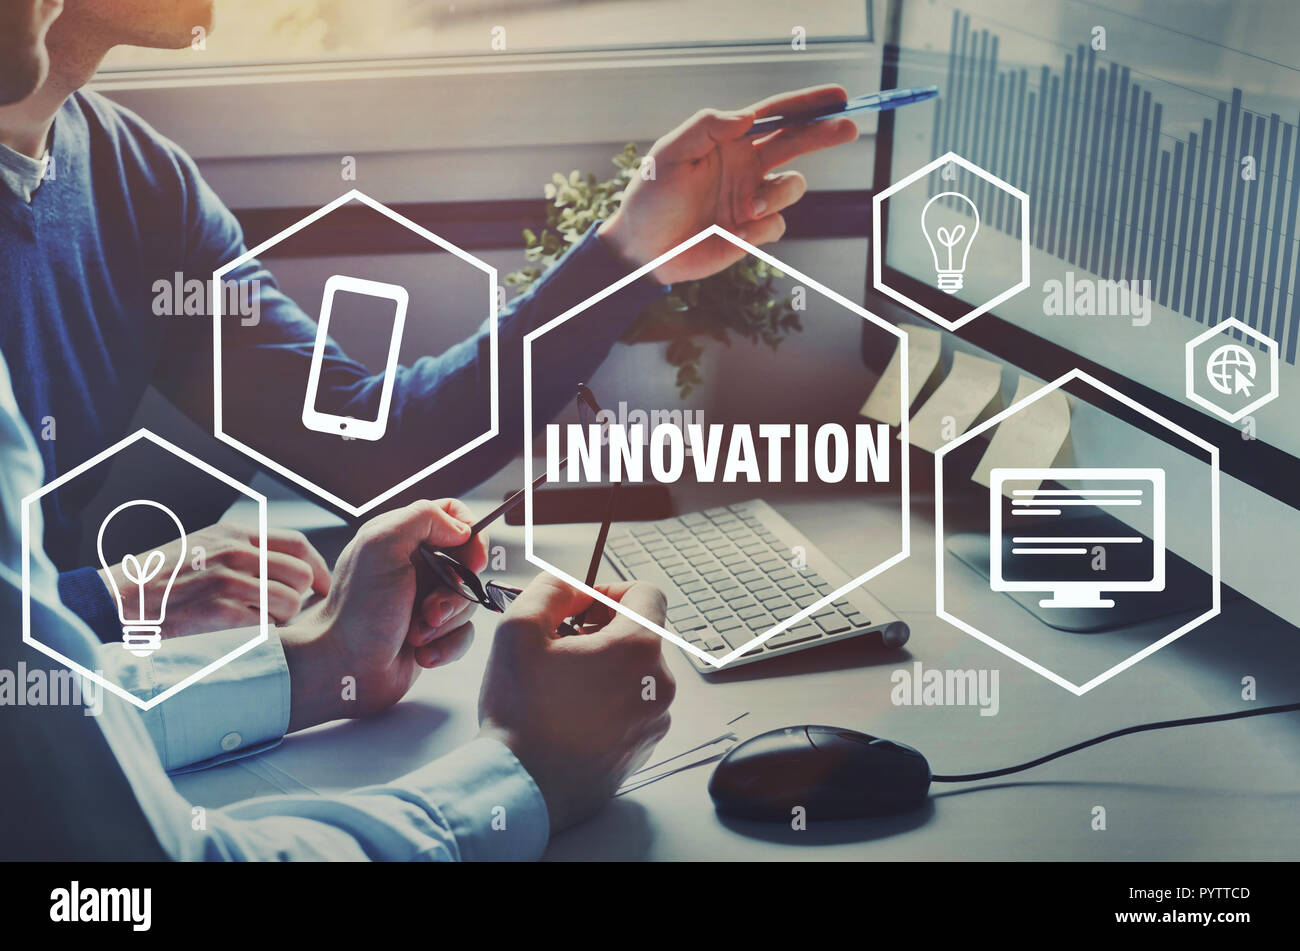 innovation technology for business, innovative idea, concept with icons - Stock Image